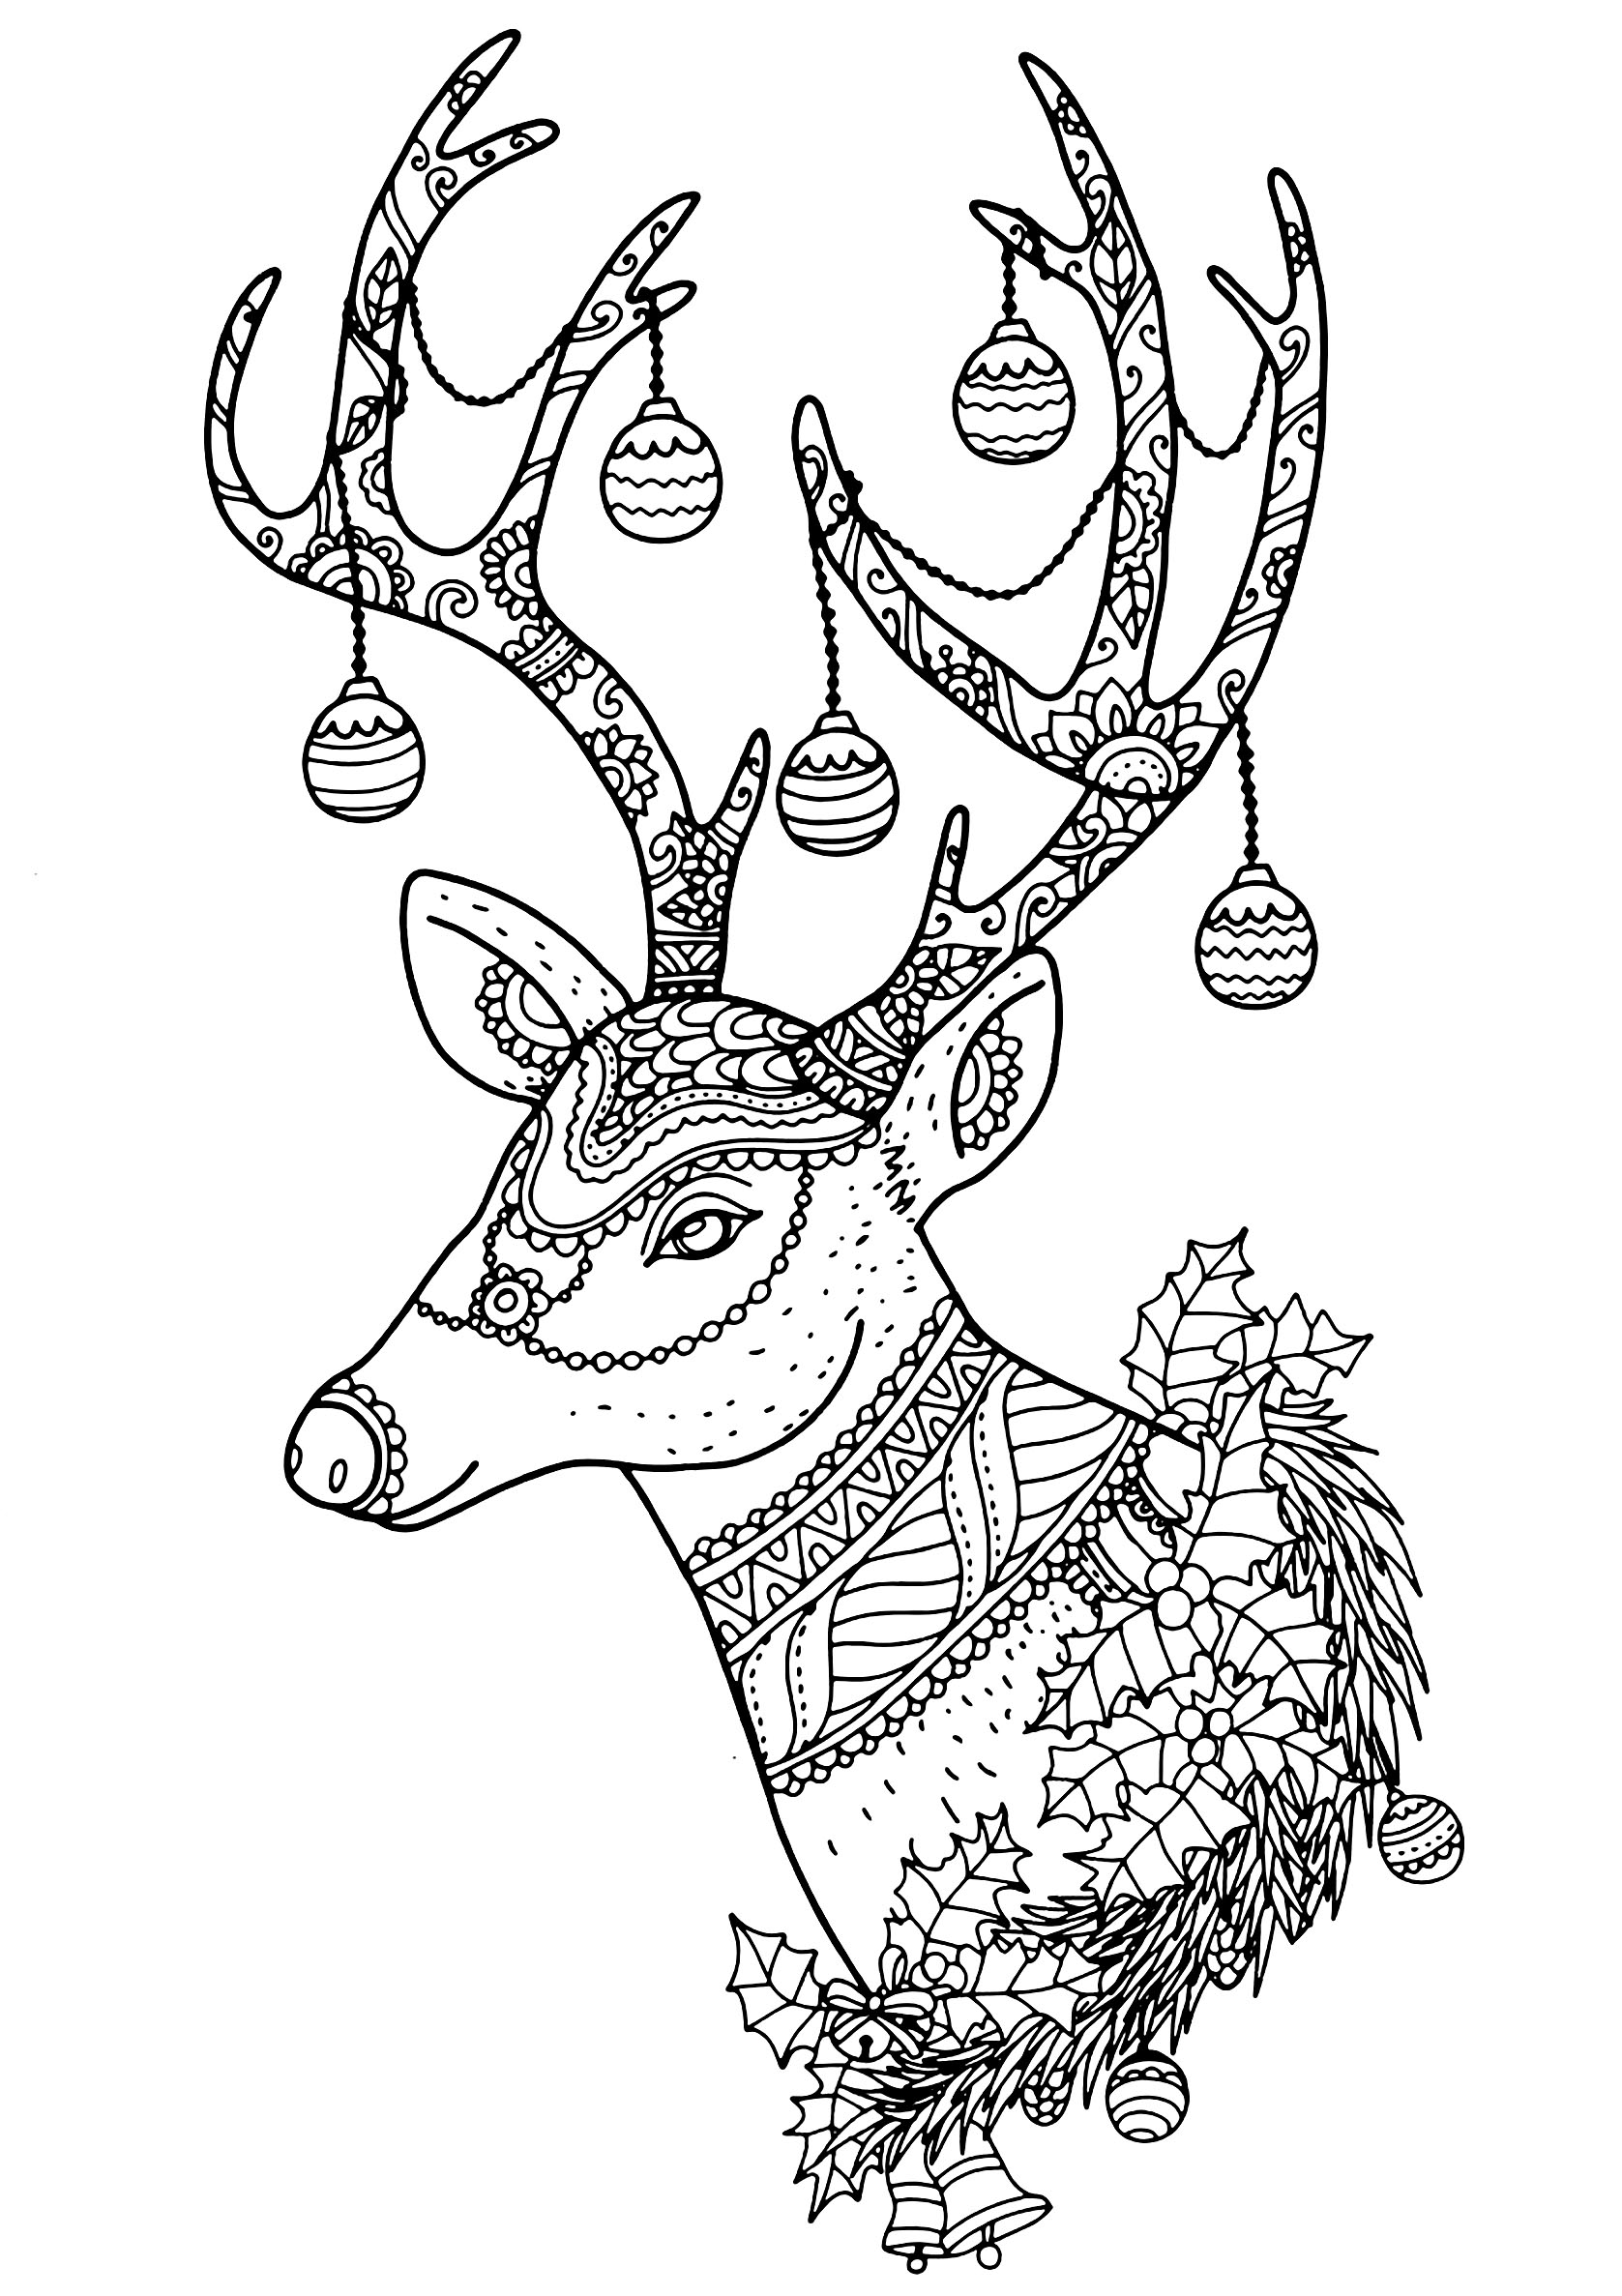 Coloring Page Christmas Reindeer Nontachai Hengtragool With Beautiful Patterns